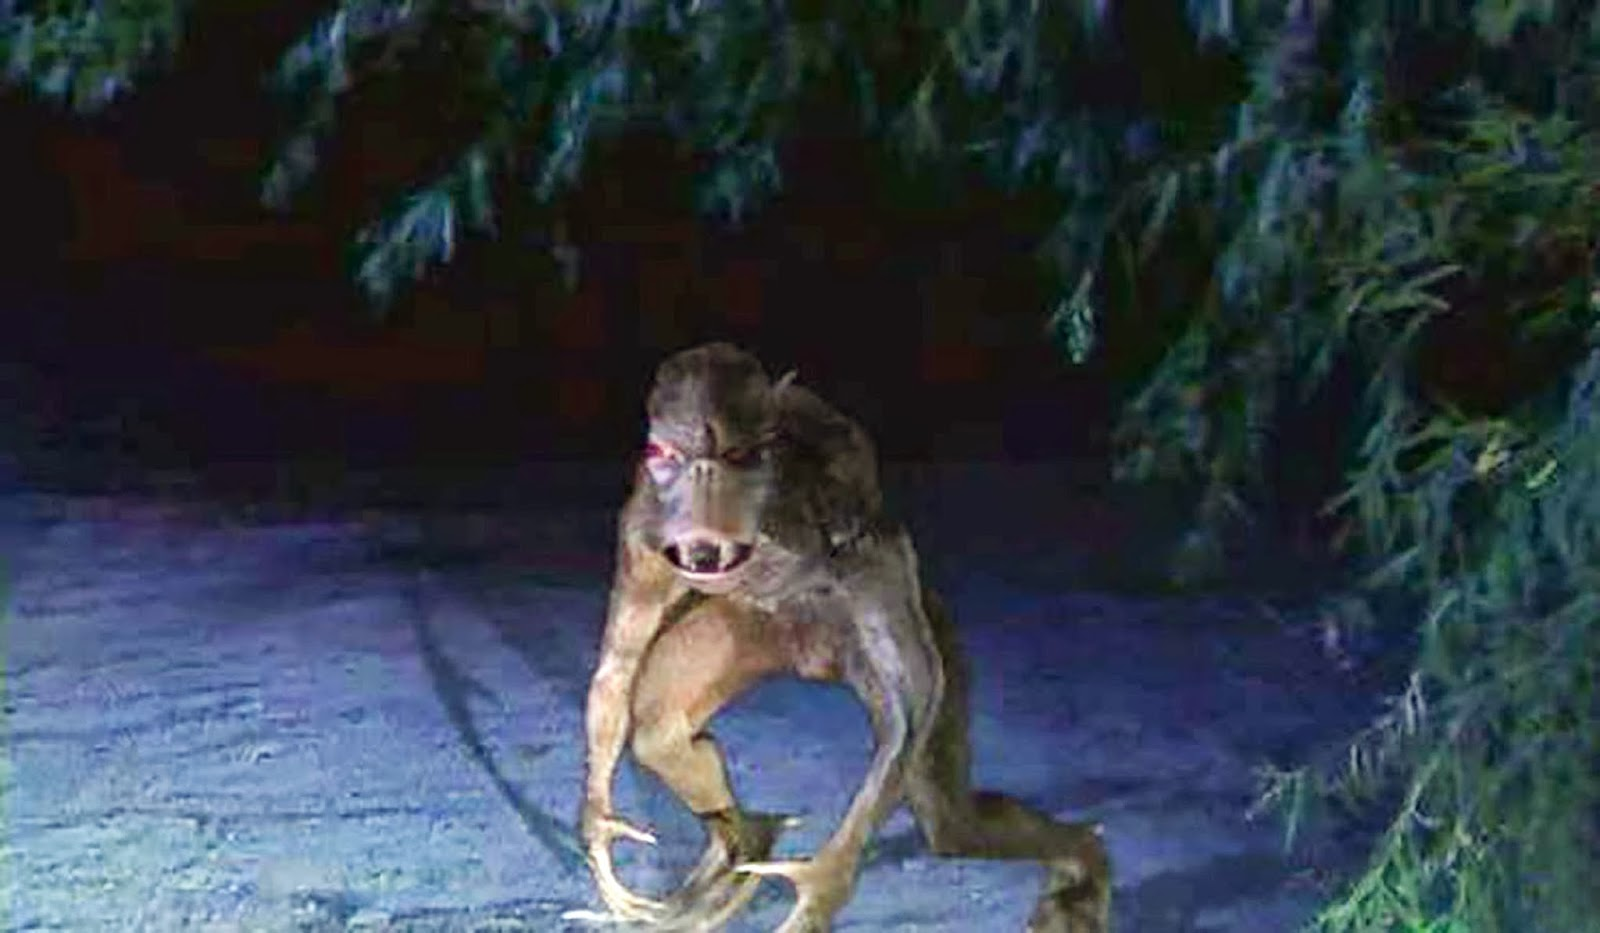 AMAZING MYSTERY VIDEOS: WEREWOLF SIGHTING CAUGHT ON CAMERA